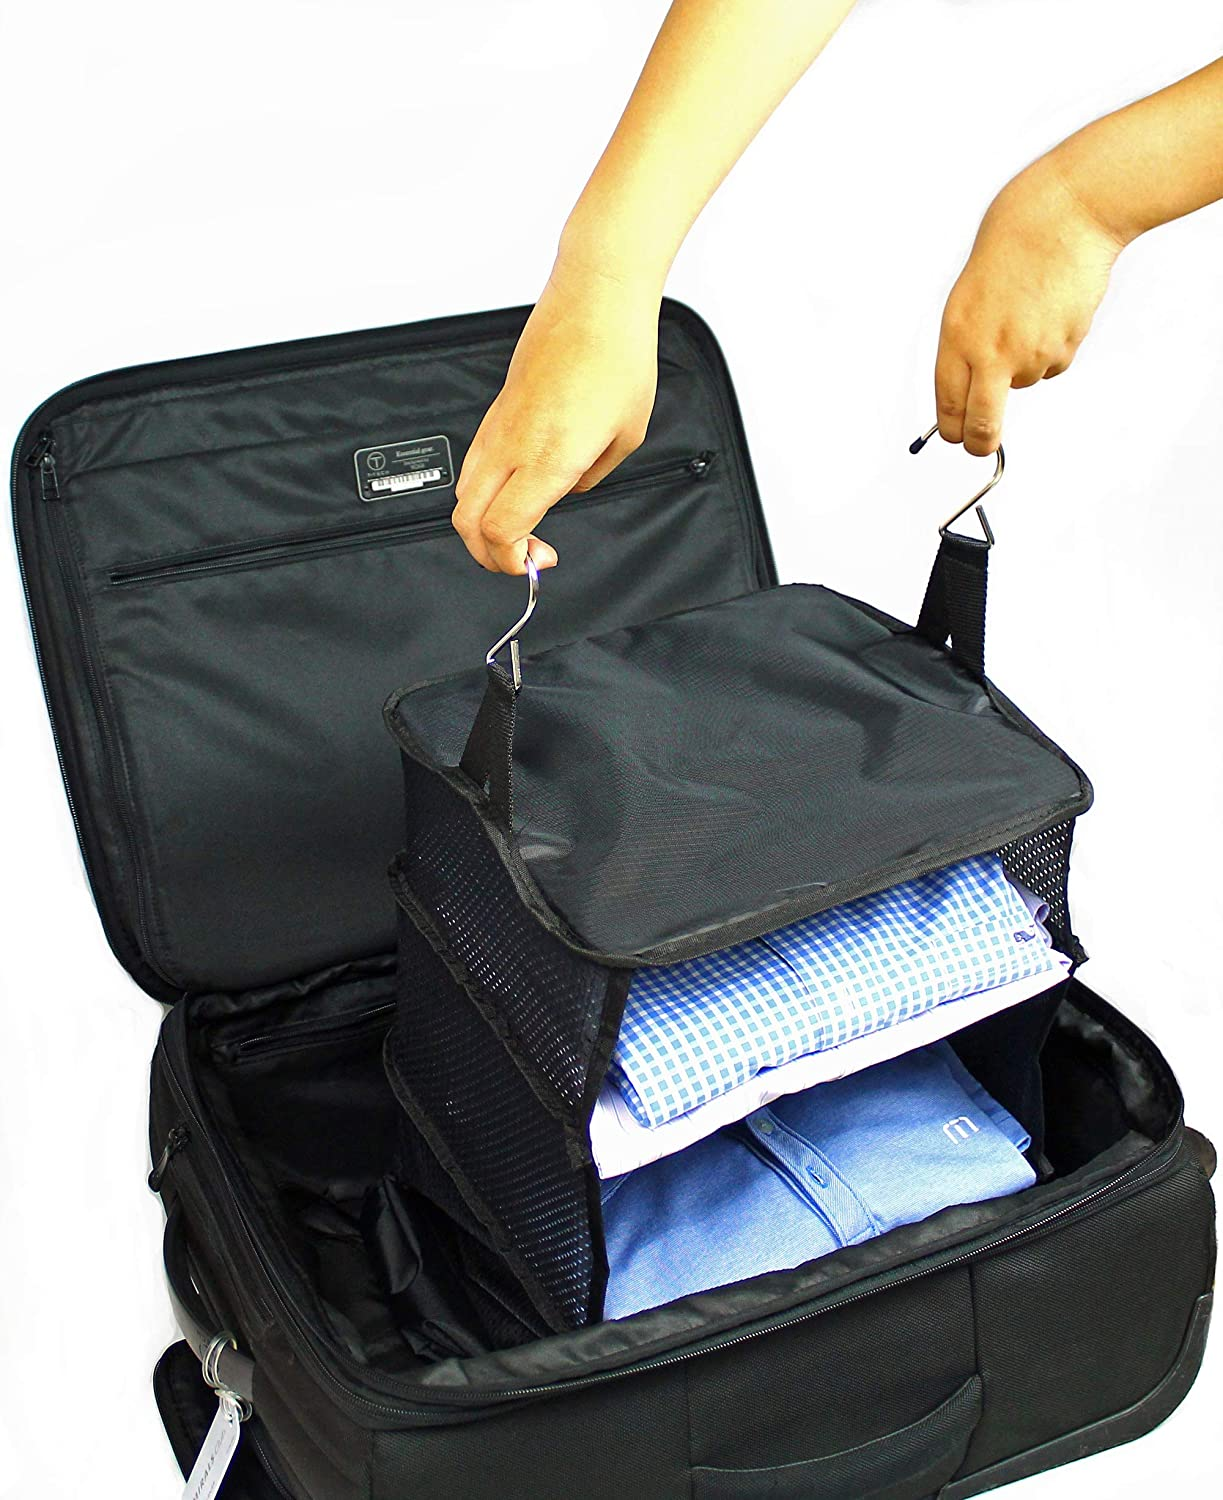 OEM Custom Toiletry Bag Exporters –  Luggage System Suitcase Organizer – Kinghow